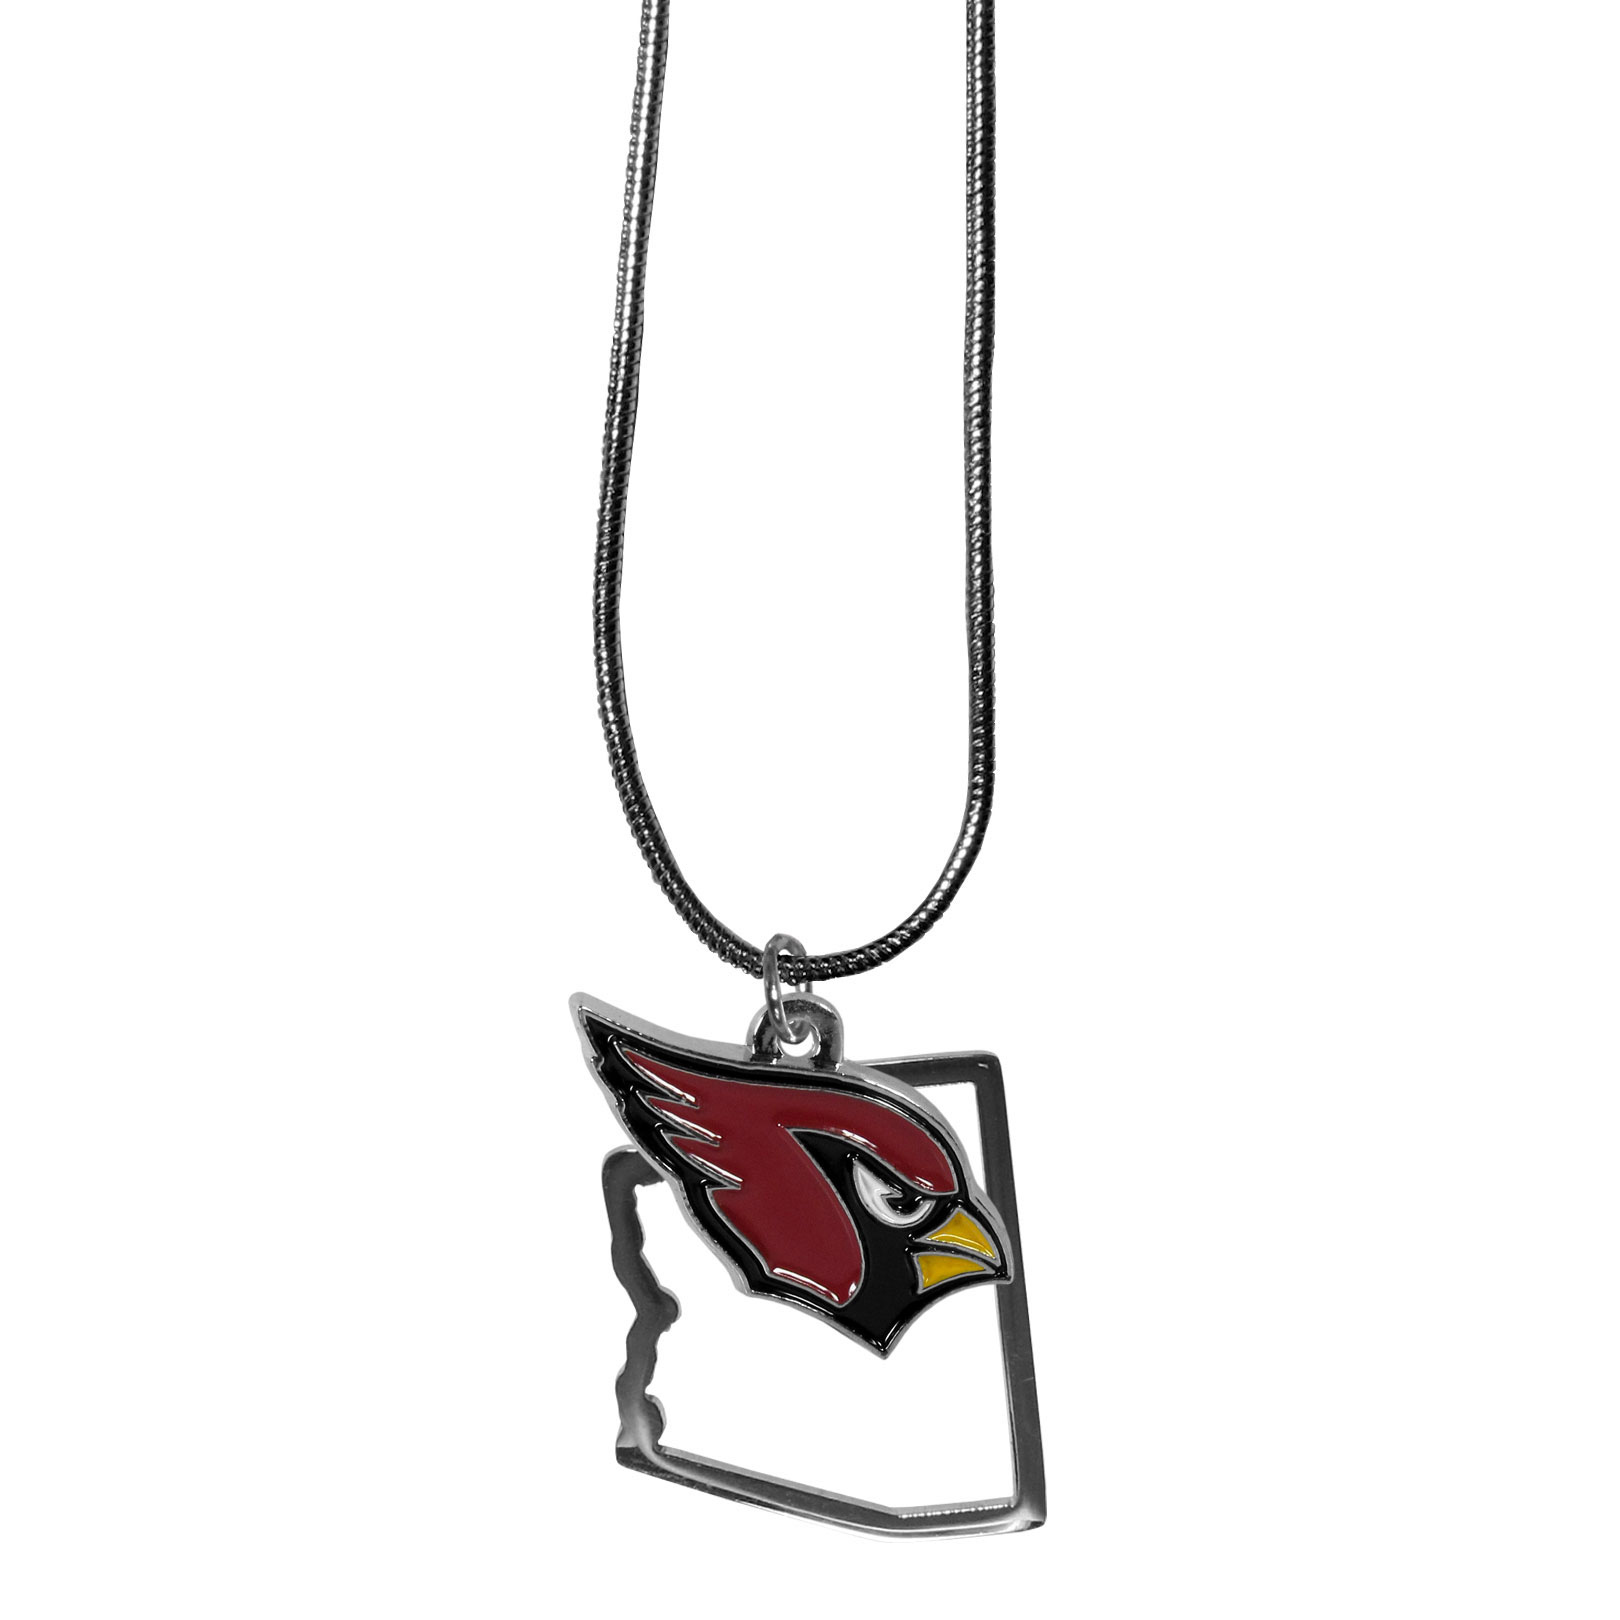 Arizona Cardinals State Charm Necklace - Get in on the trend! State themes are a trend that just keeps getting more popular and these necklaces take the state style and give it a sporty twist with a Arizona Cardinals added to the state outline charm. The come on a snake chain that is 22 inches long.